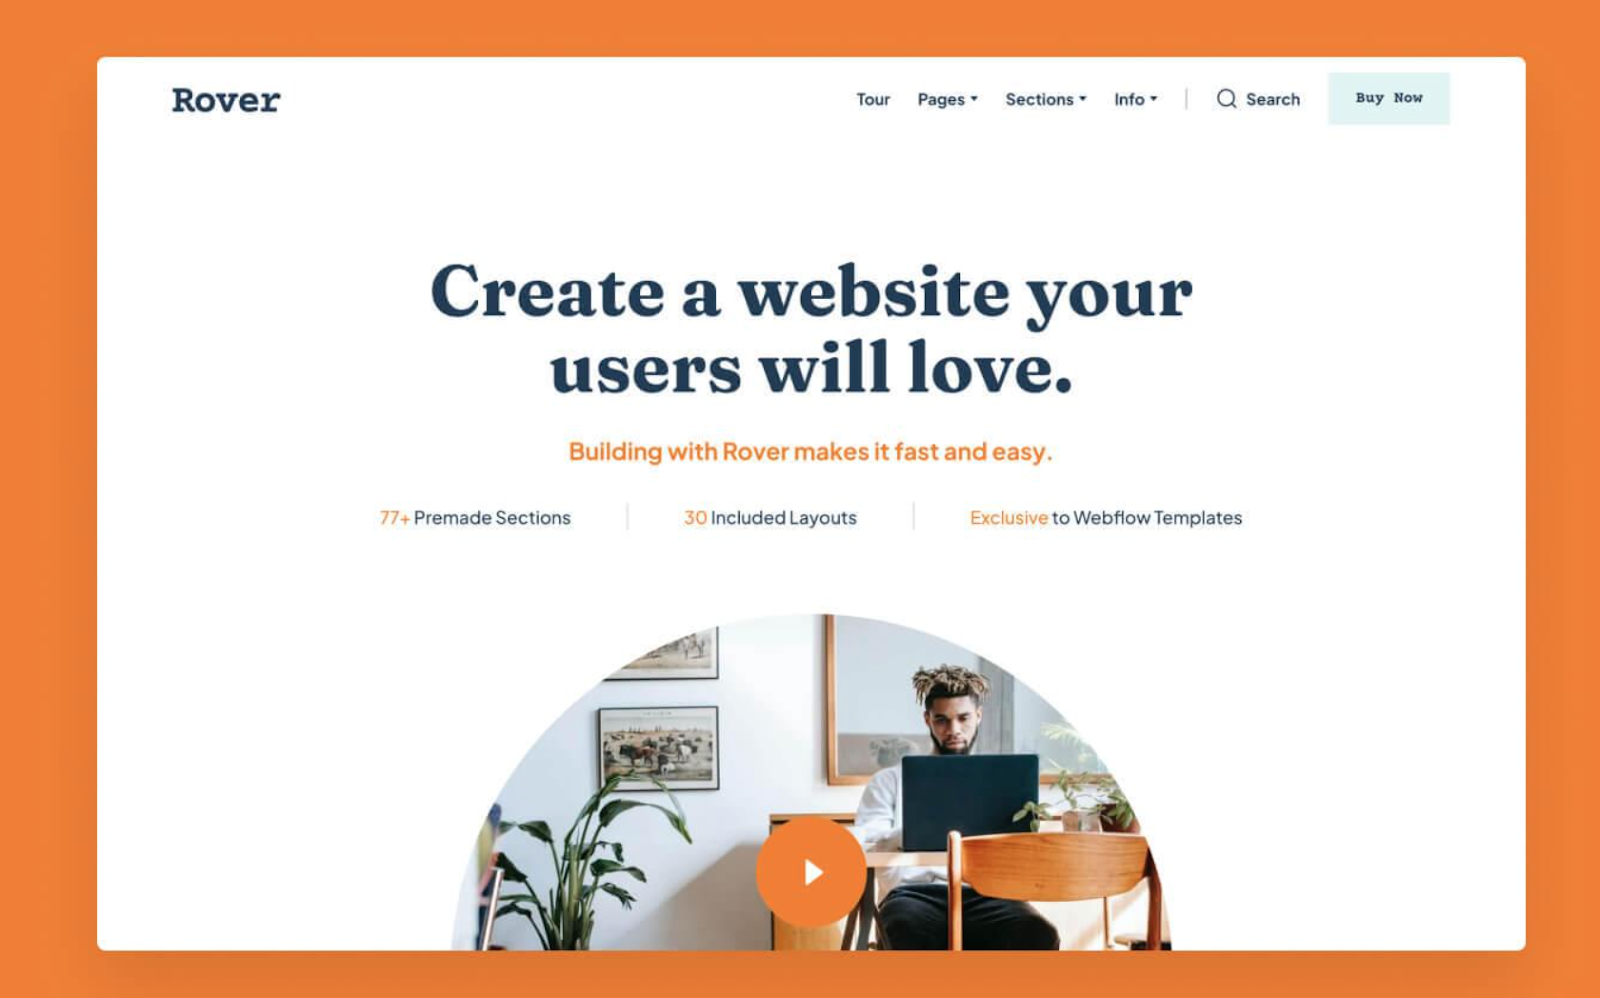 Rover webflow template